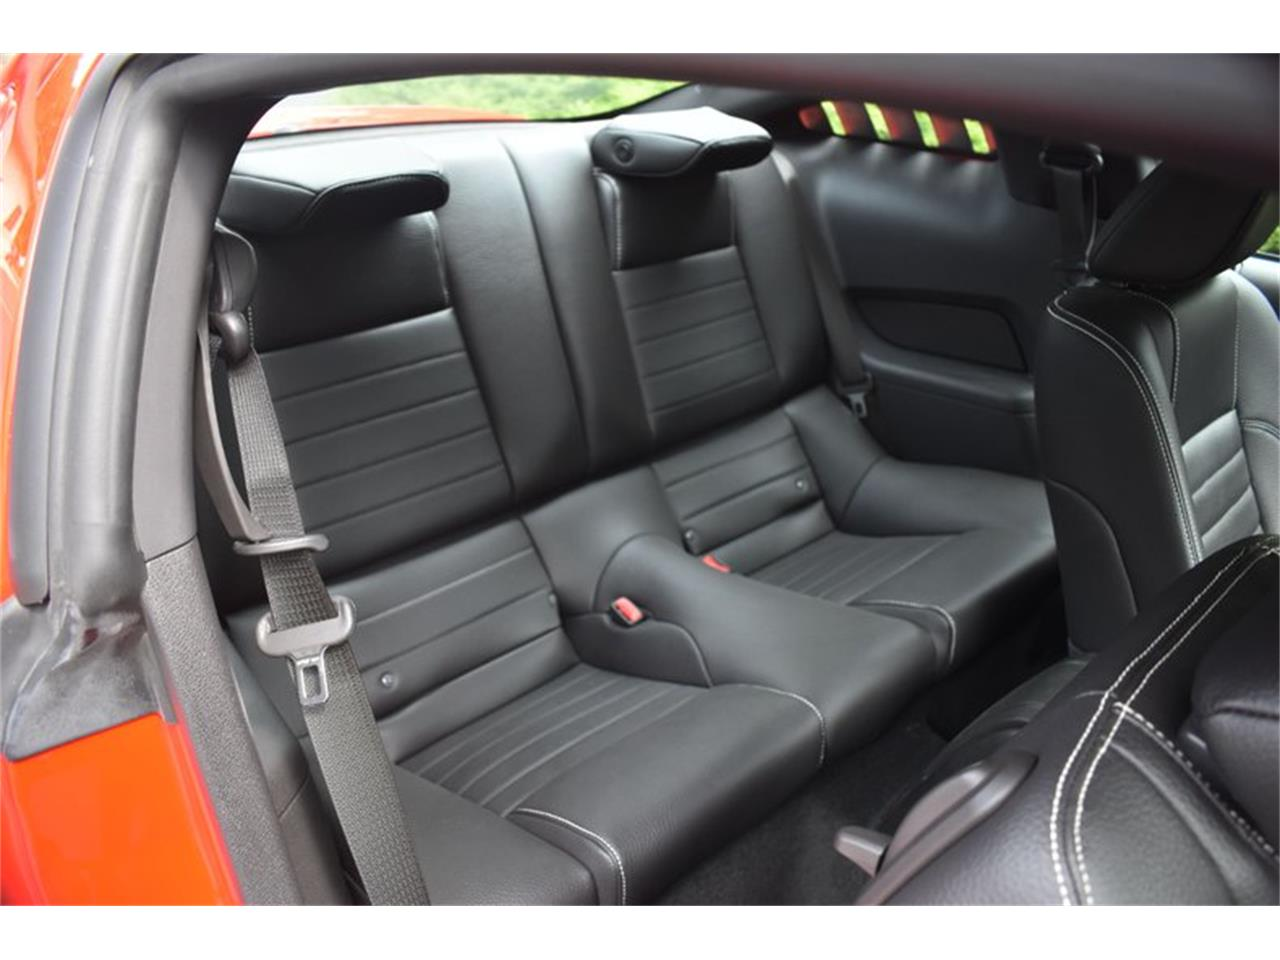 2012 Ford Mustang (CC-1248869) for sale in Elkhart, Indiana